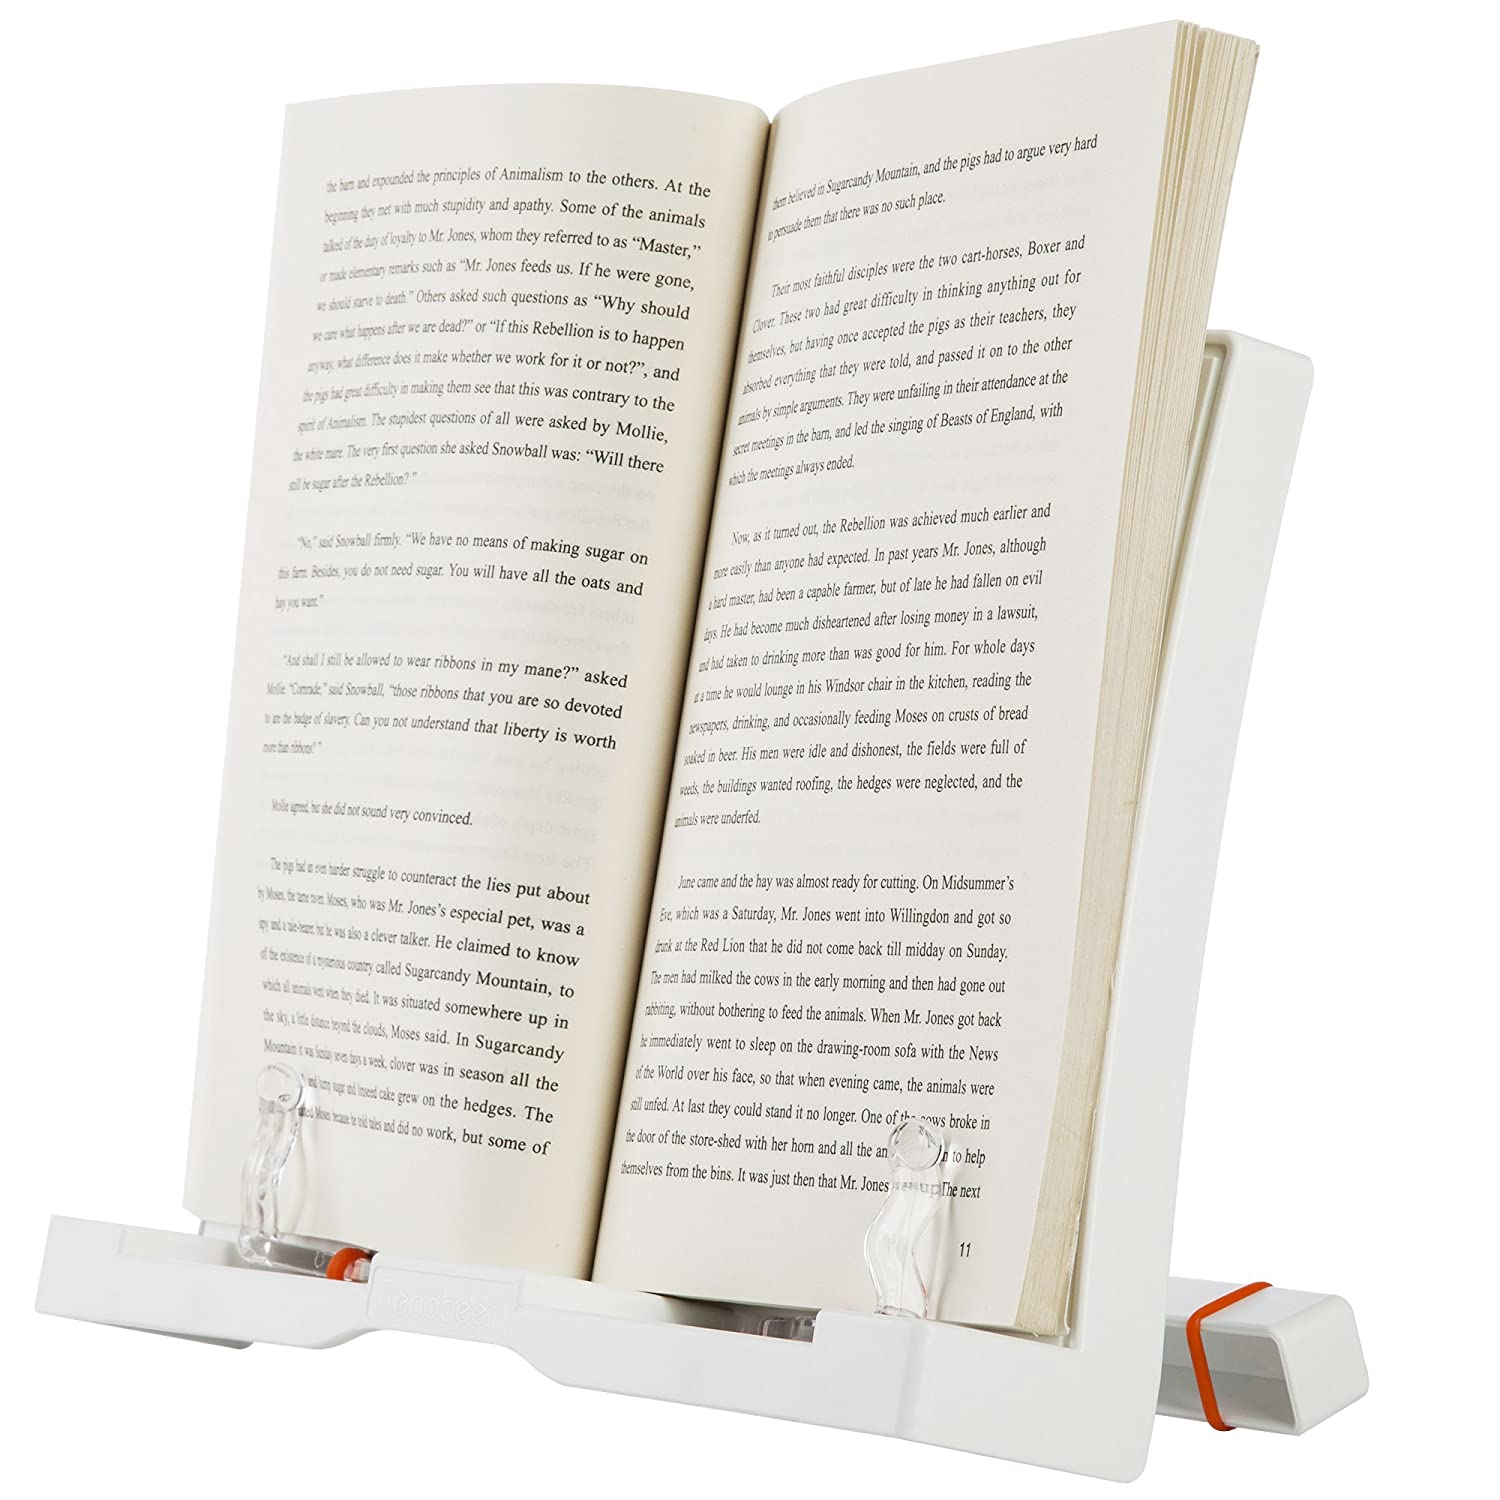 readaeer 180 angle adjustable reading cook book